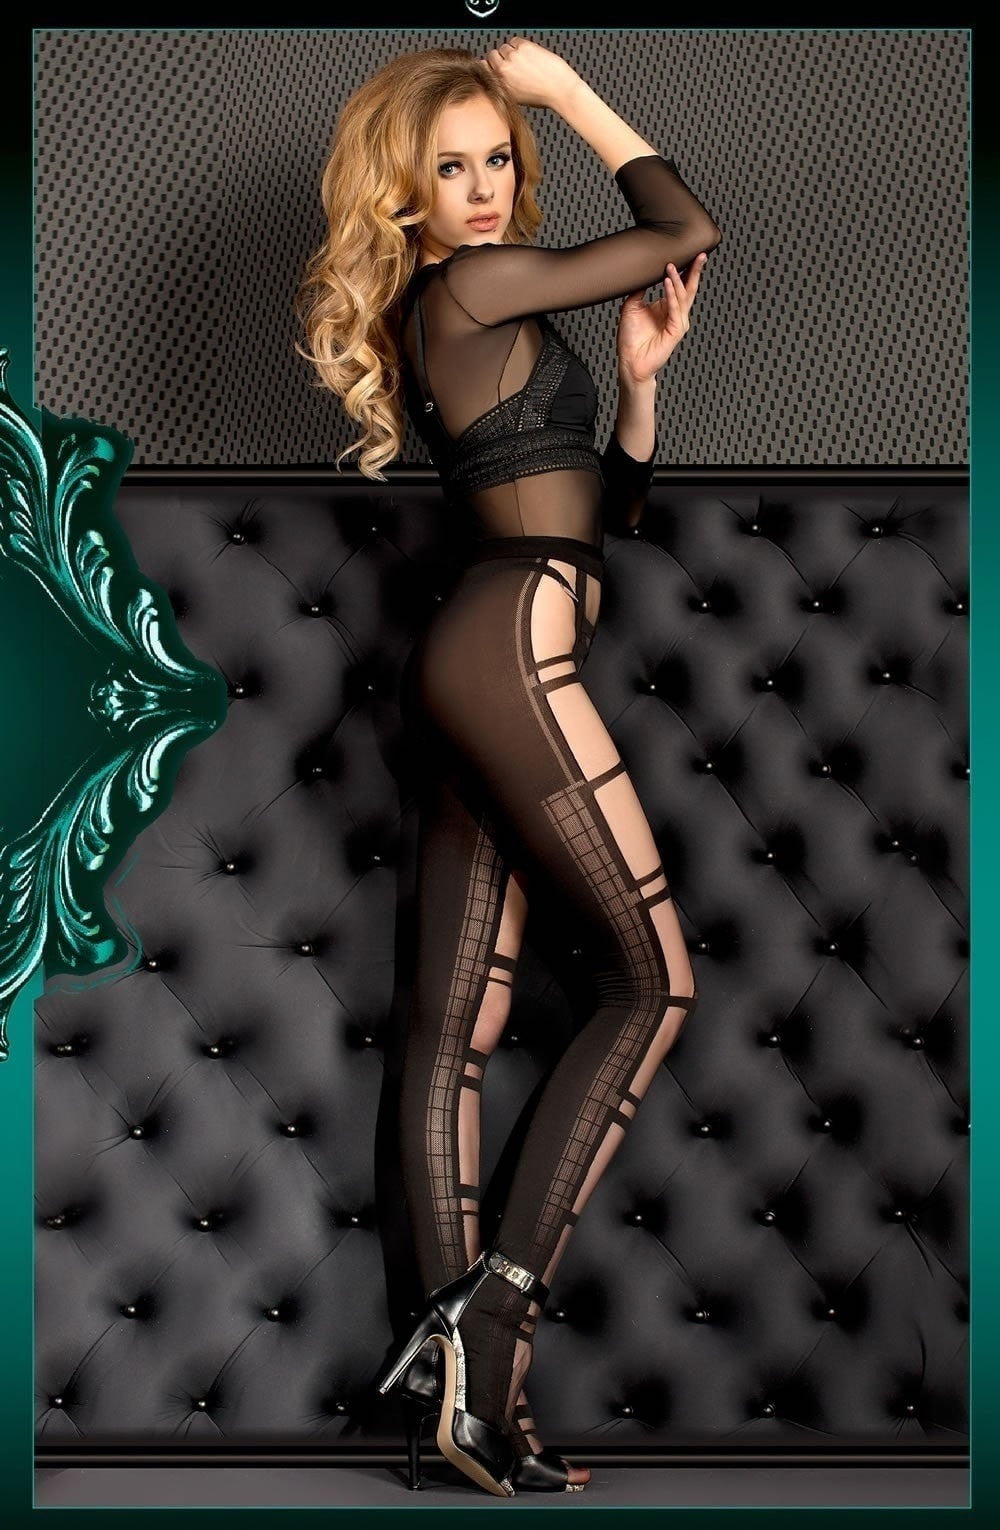 Ballerina Tights 396 (Black) - Tights - Ballerina - Charm and Lace Boutique